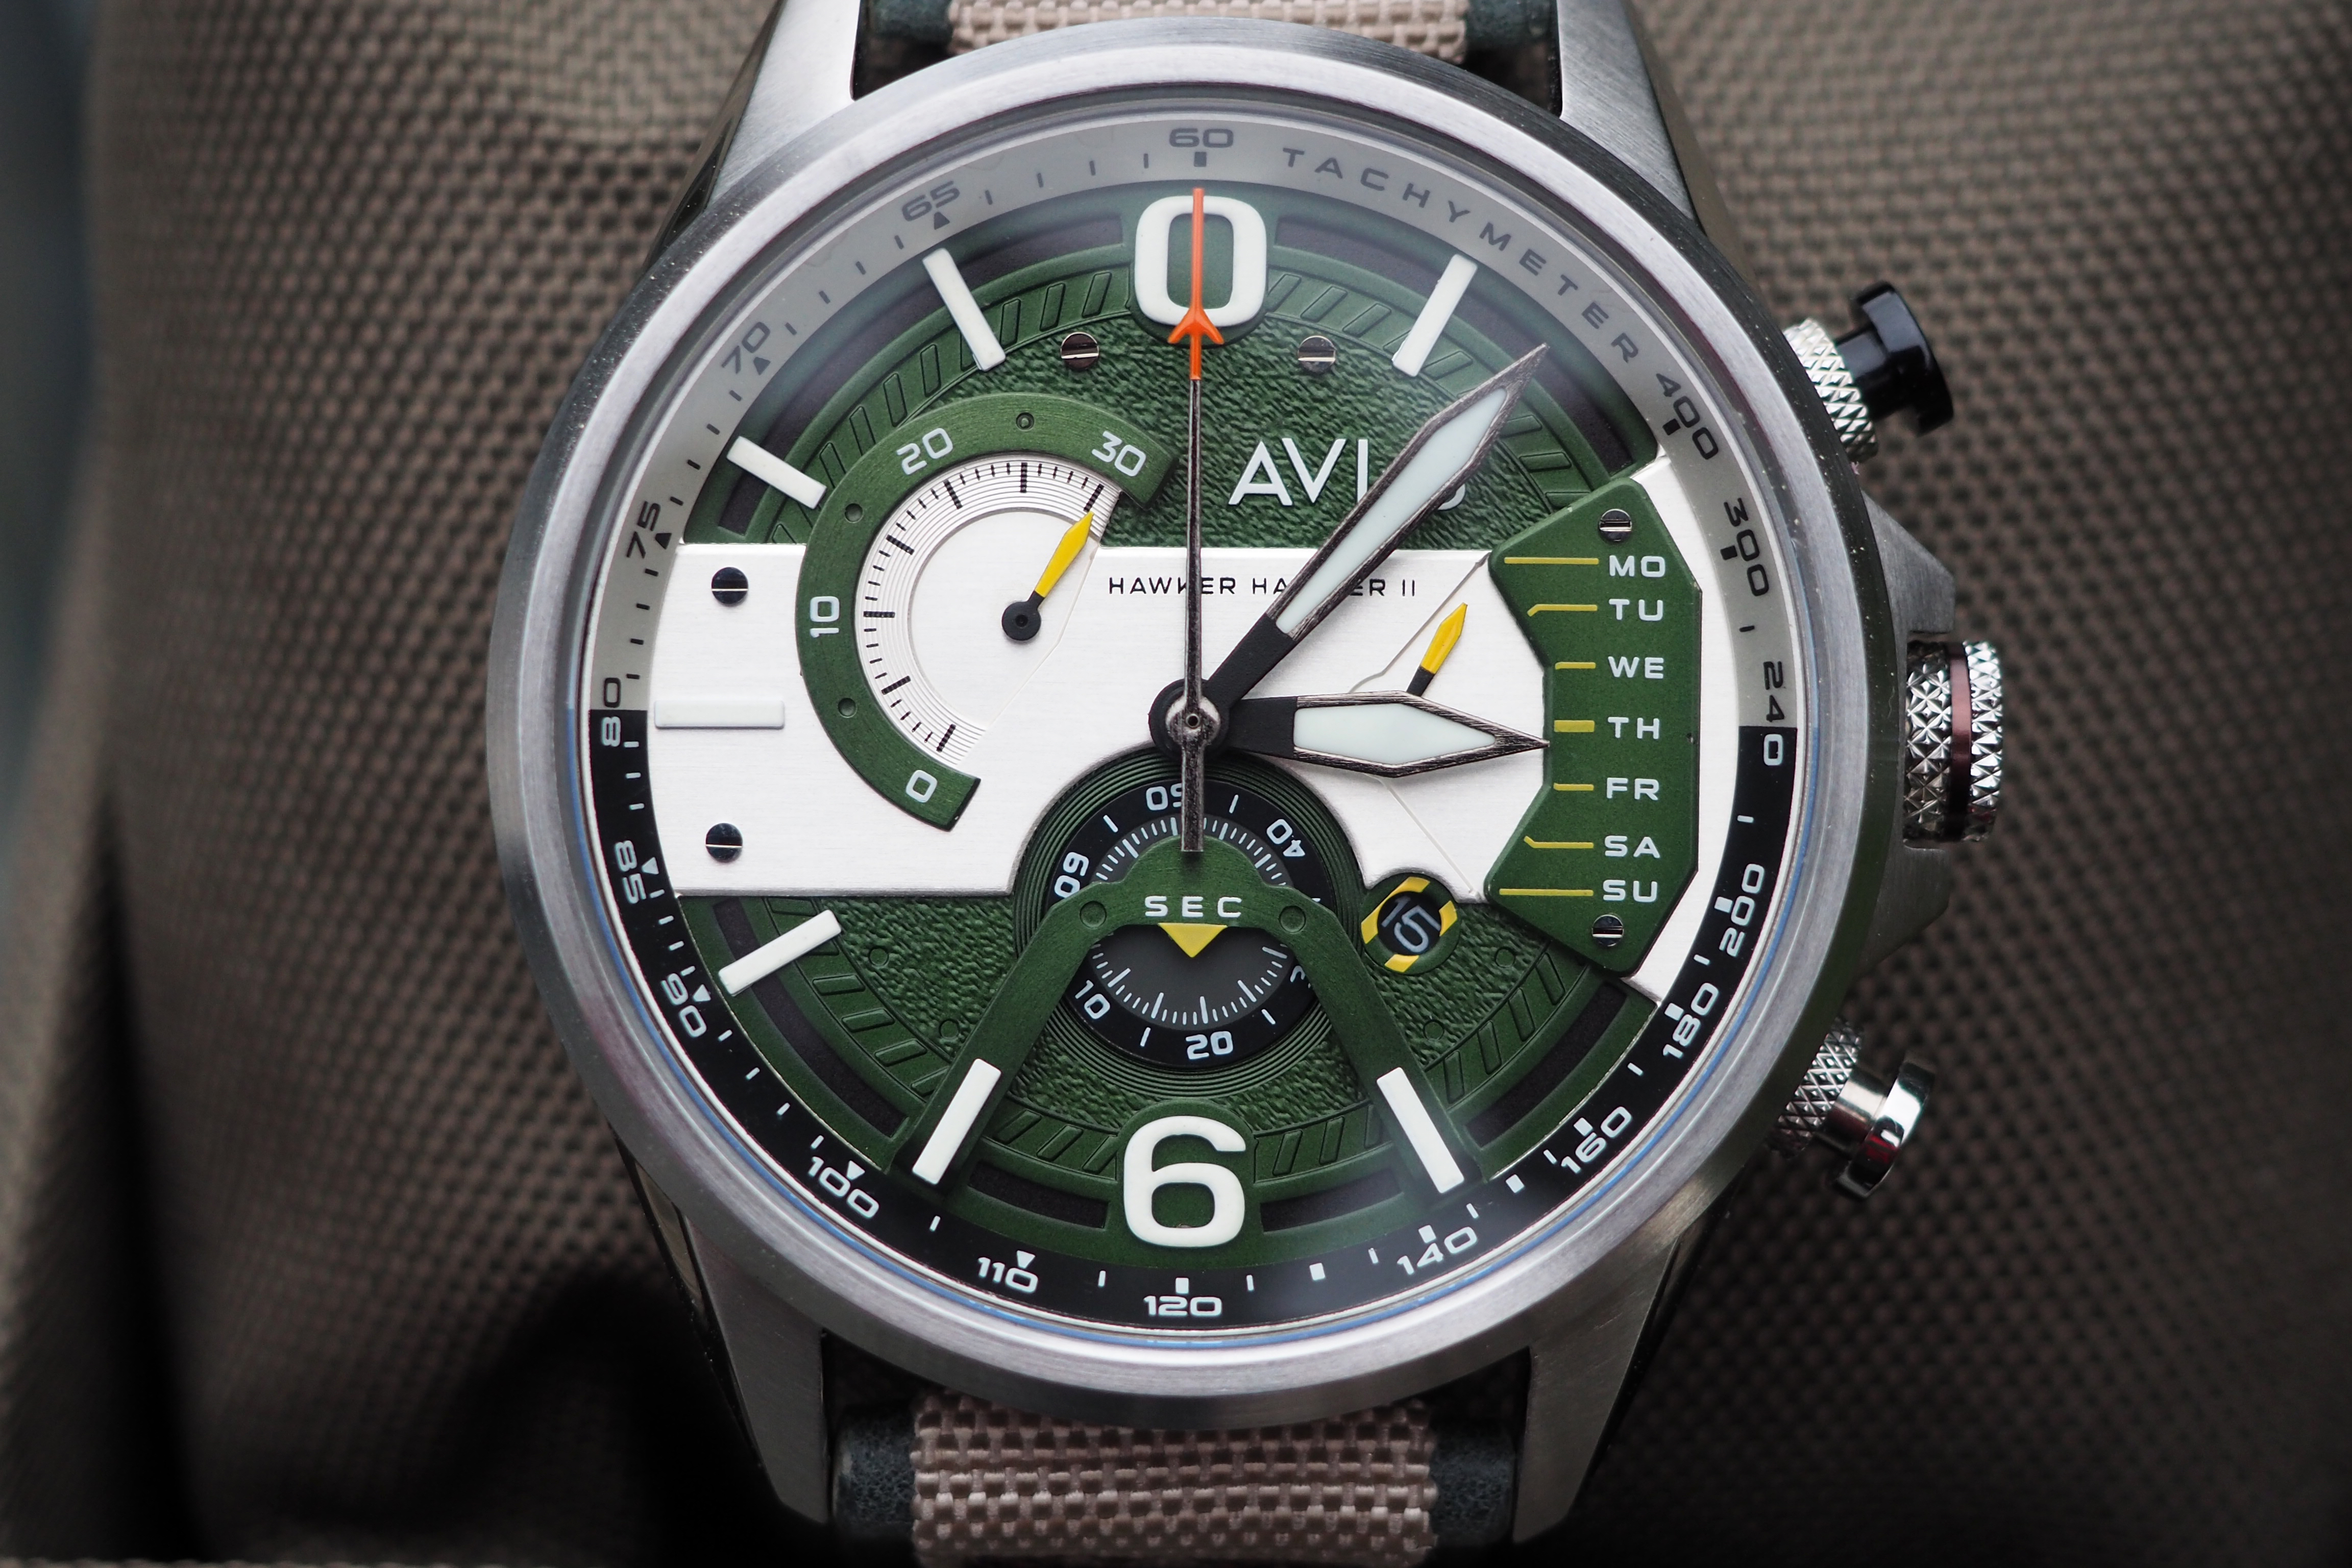 AVI-8 Hawker Harrier II AV-4056 Watch Review